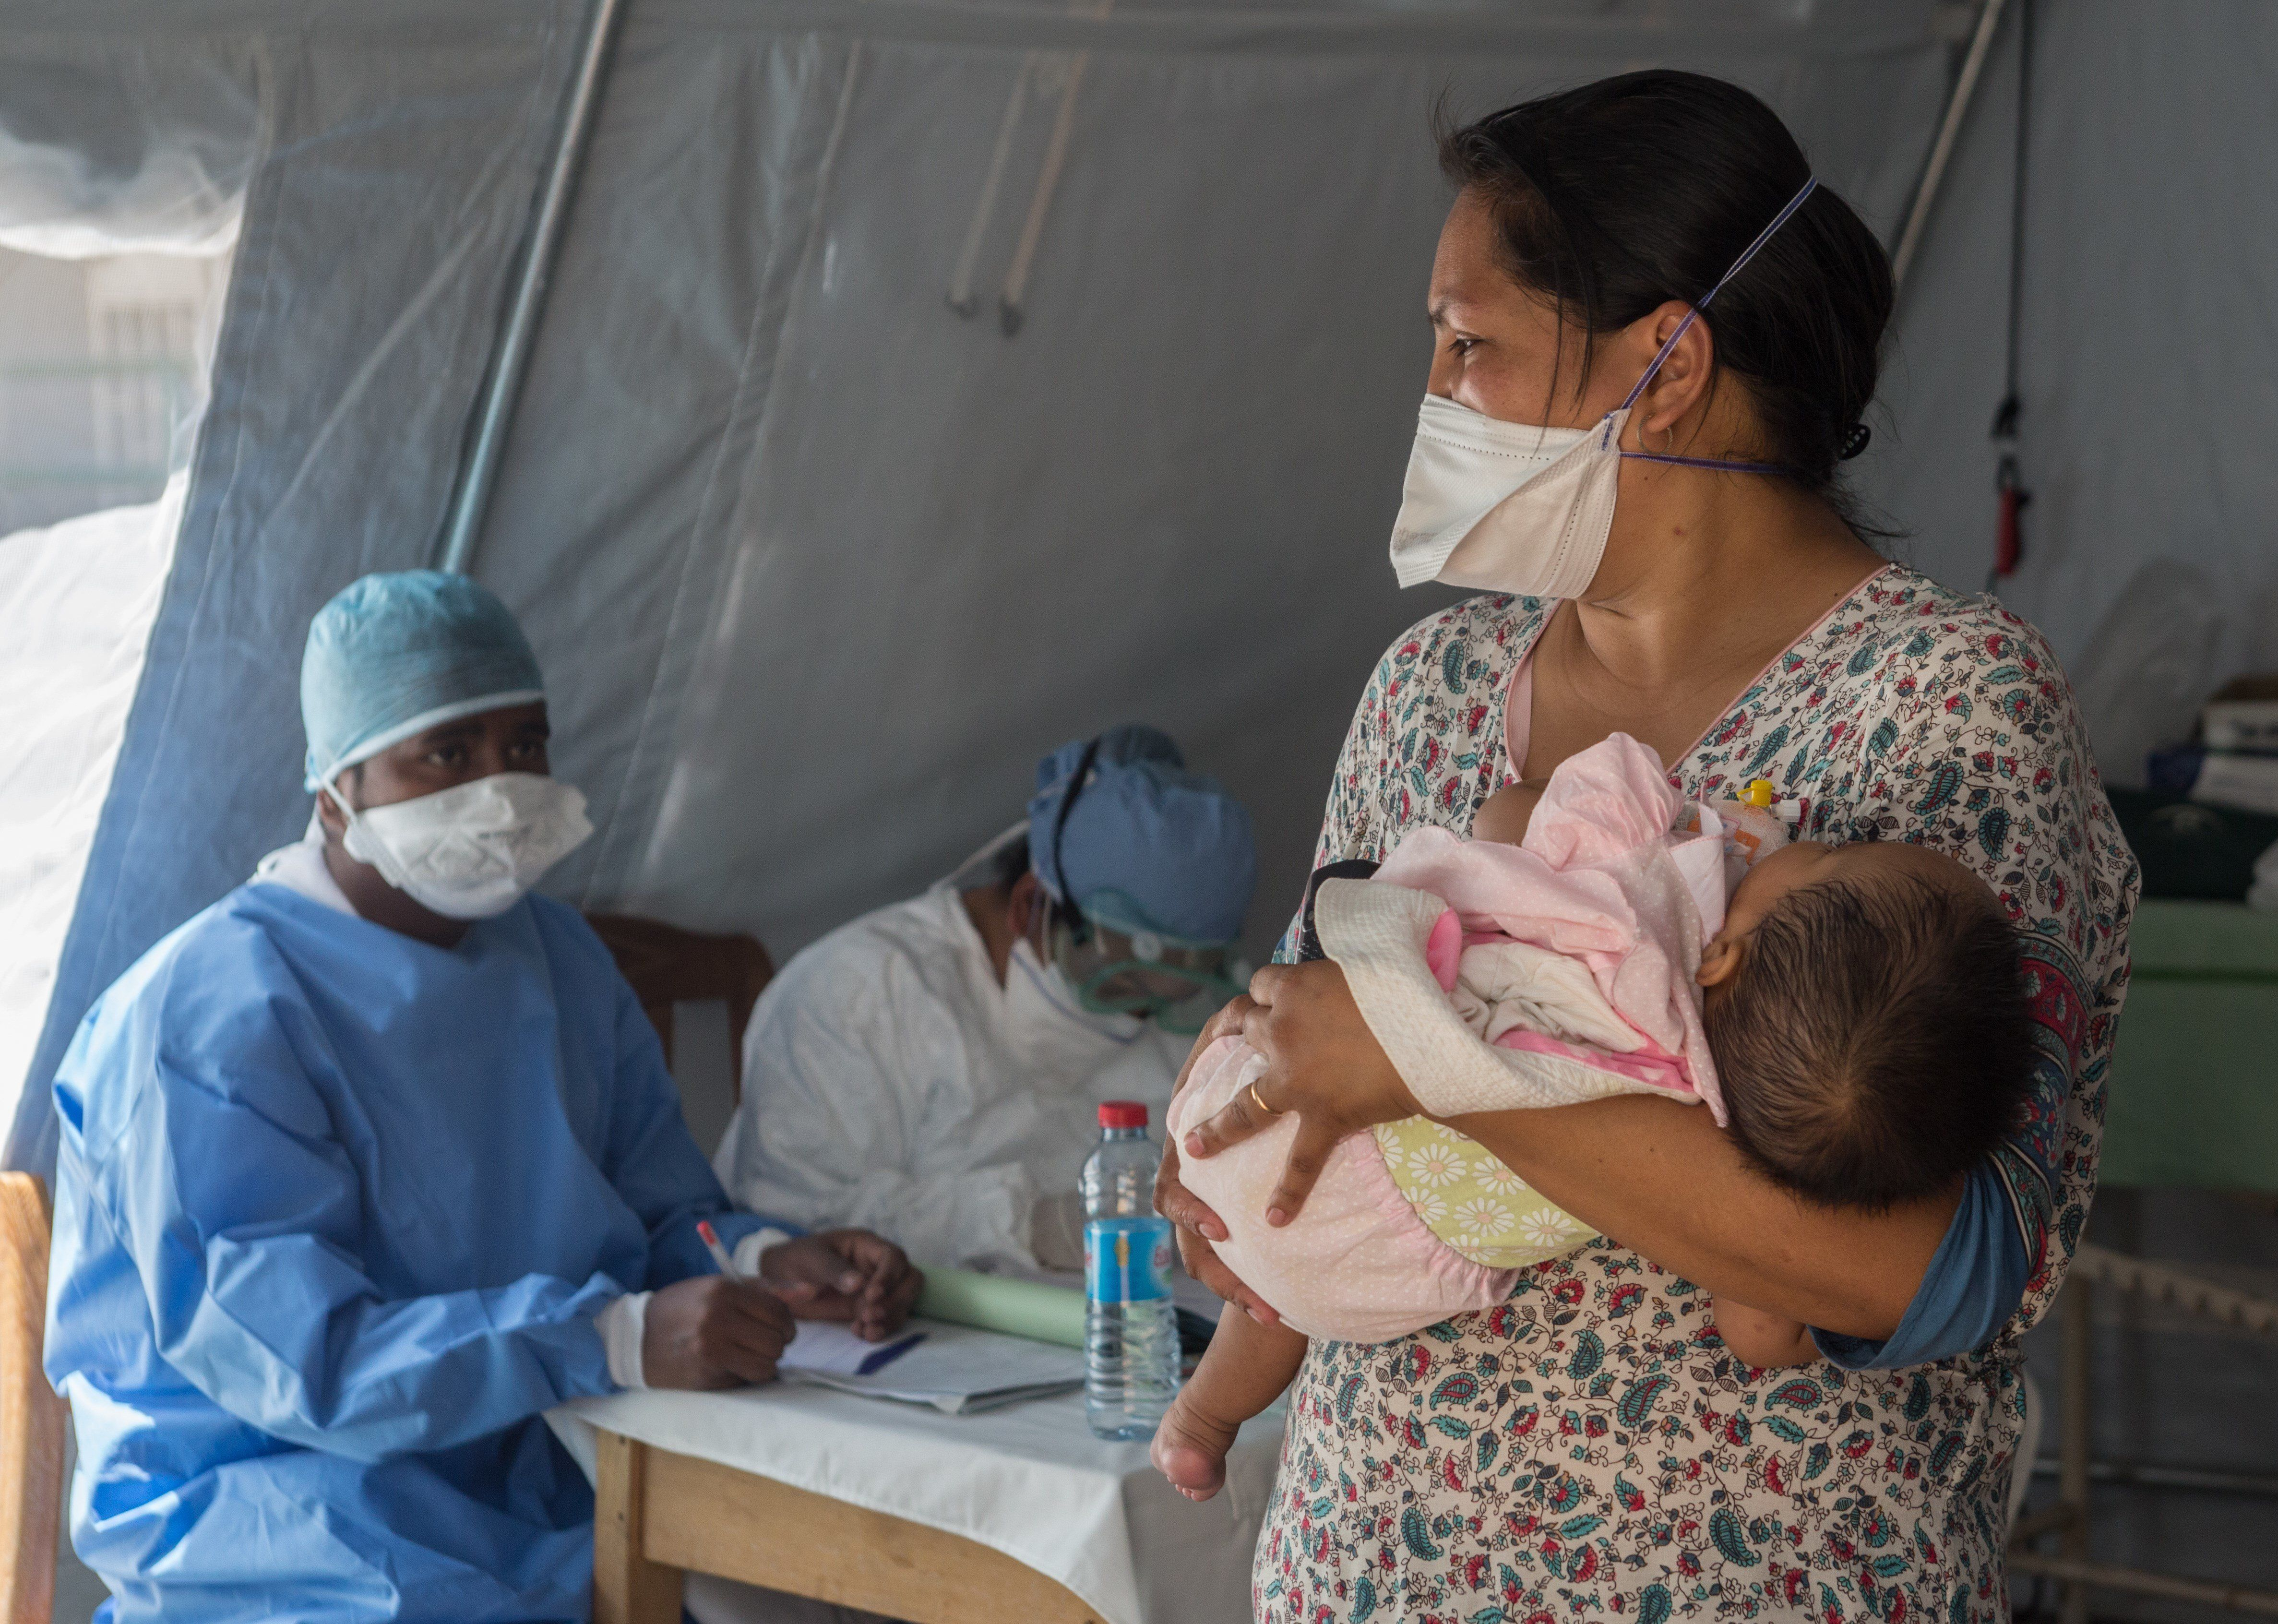 At a childrens hospital in Antananarivo a baby was tested and found to have the plague and was then taken to the specialist anti-plague hospital